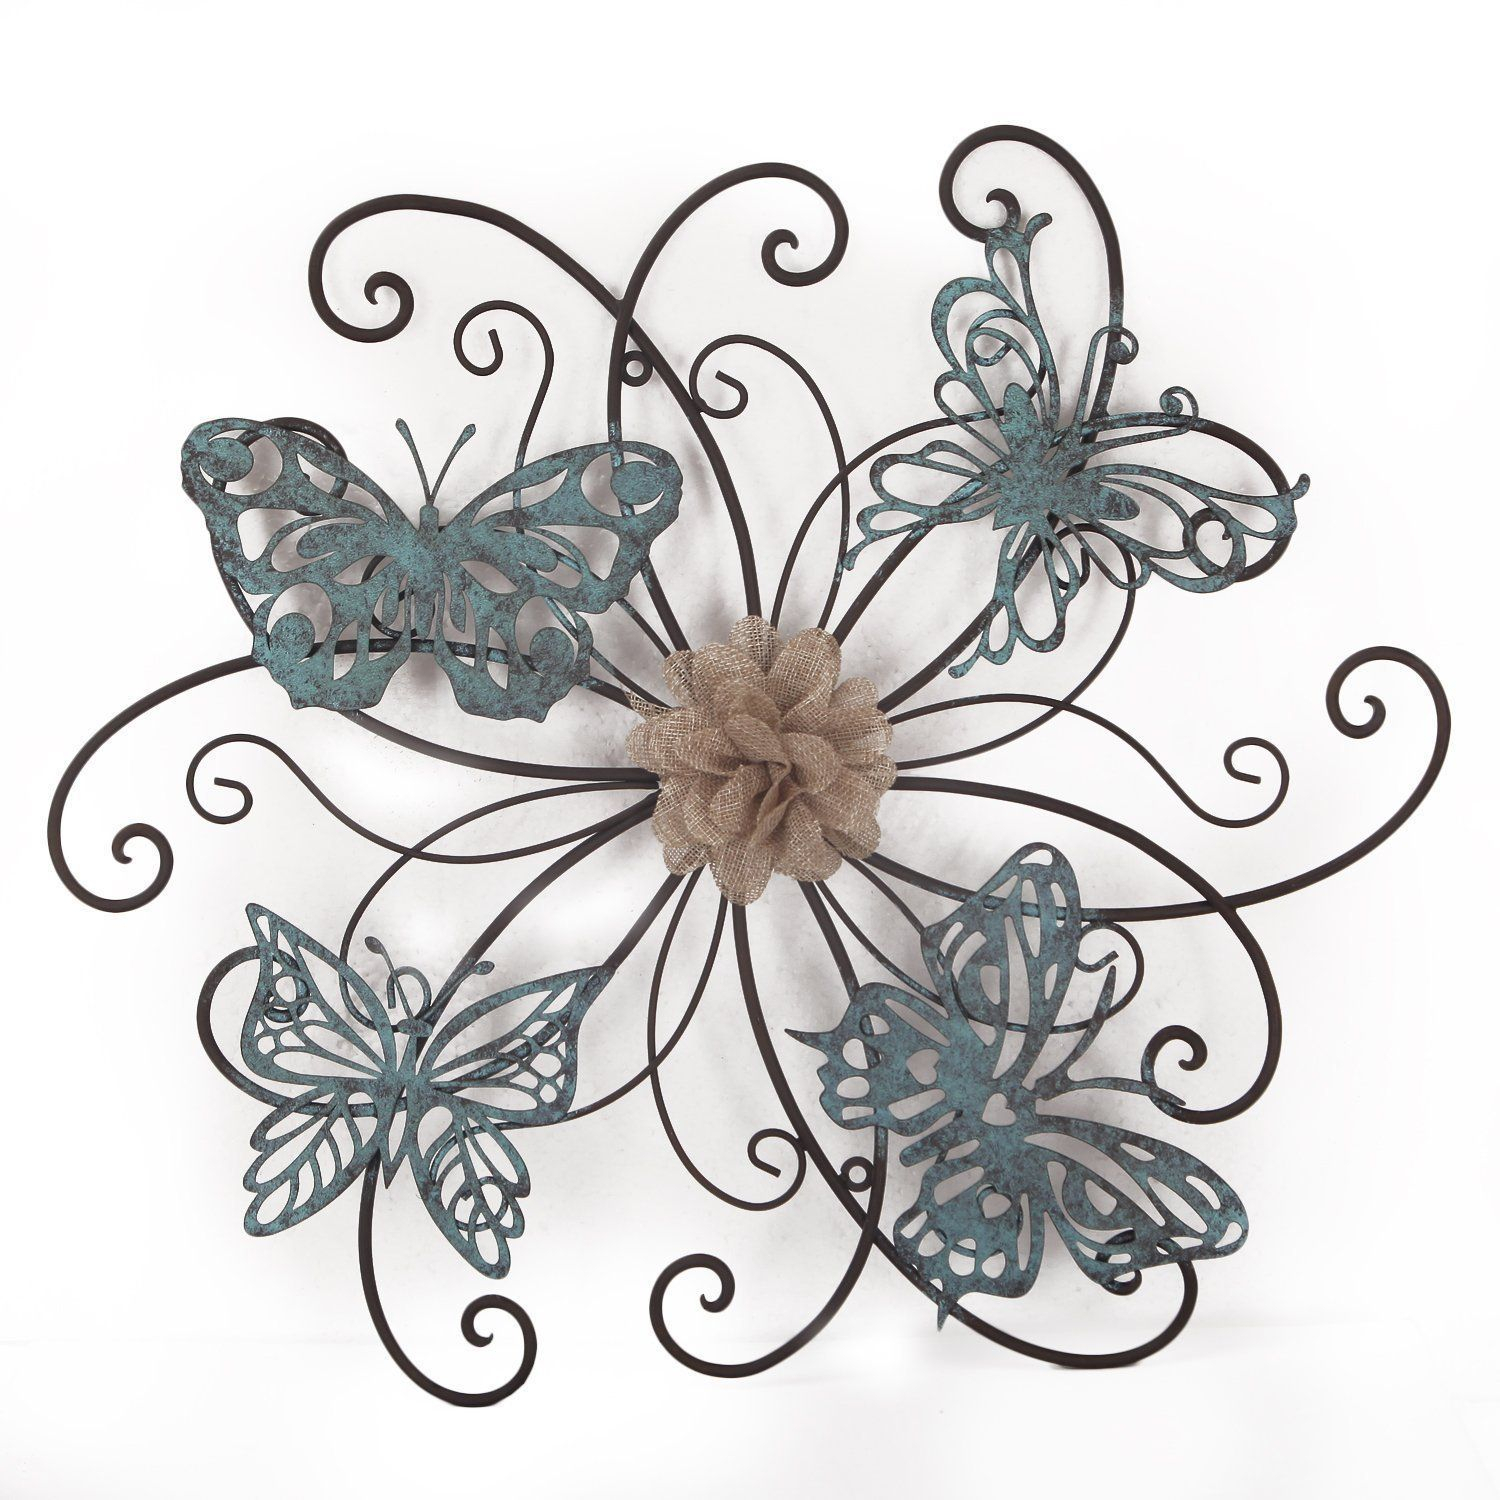 Adeco Flower And Butterfly Urban Design Metal Wall Decor For For Flower And Butterfly Urban Design Metal Wall Decor (View 2 of 30)